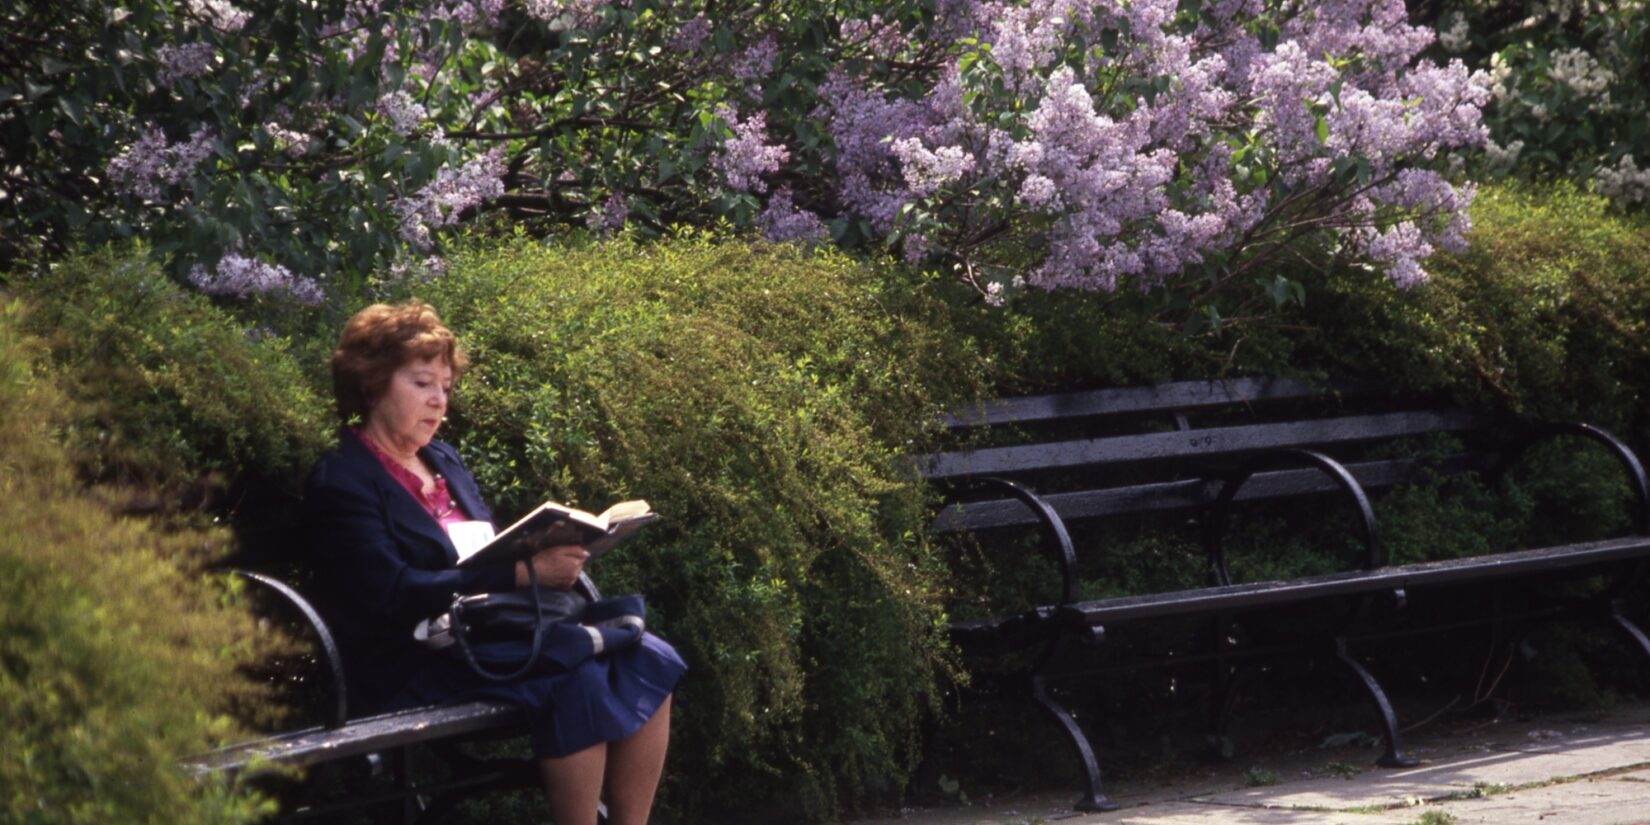 A woman sits alone on a bench in the Garden, reading a book.